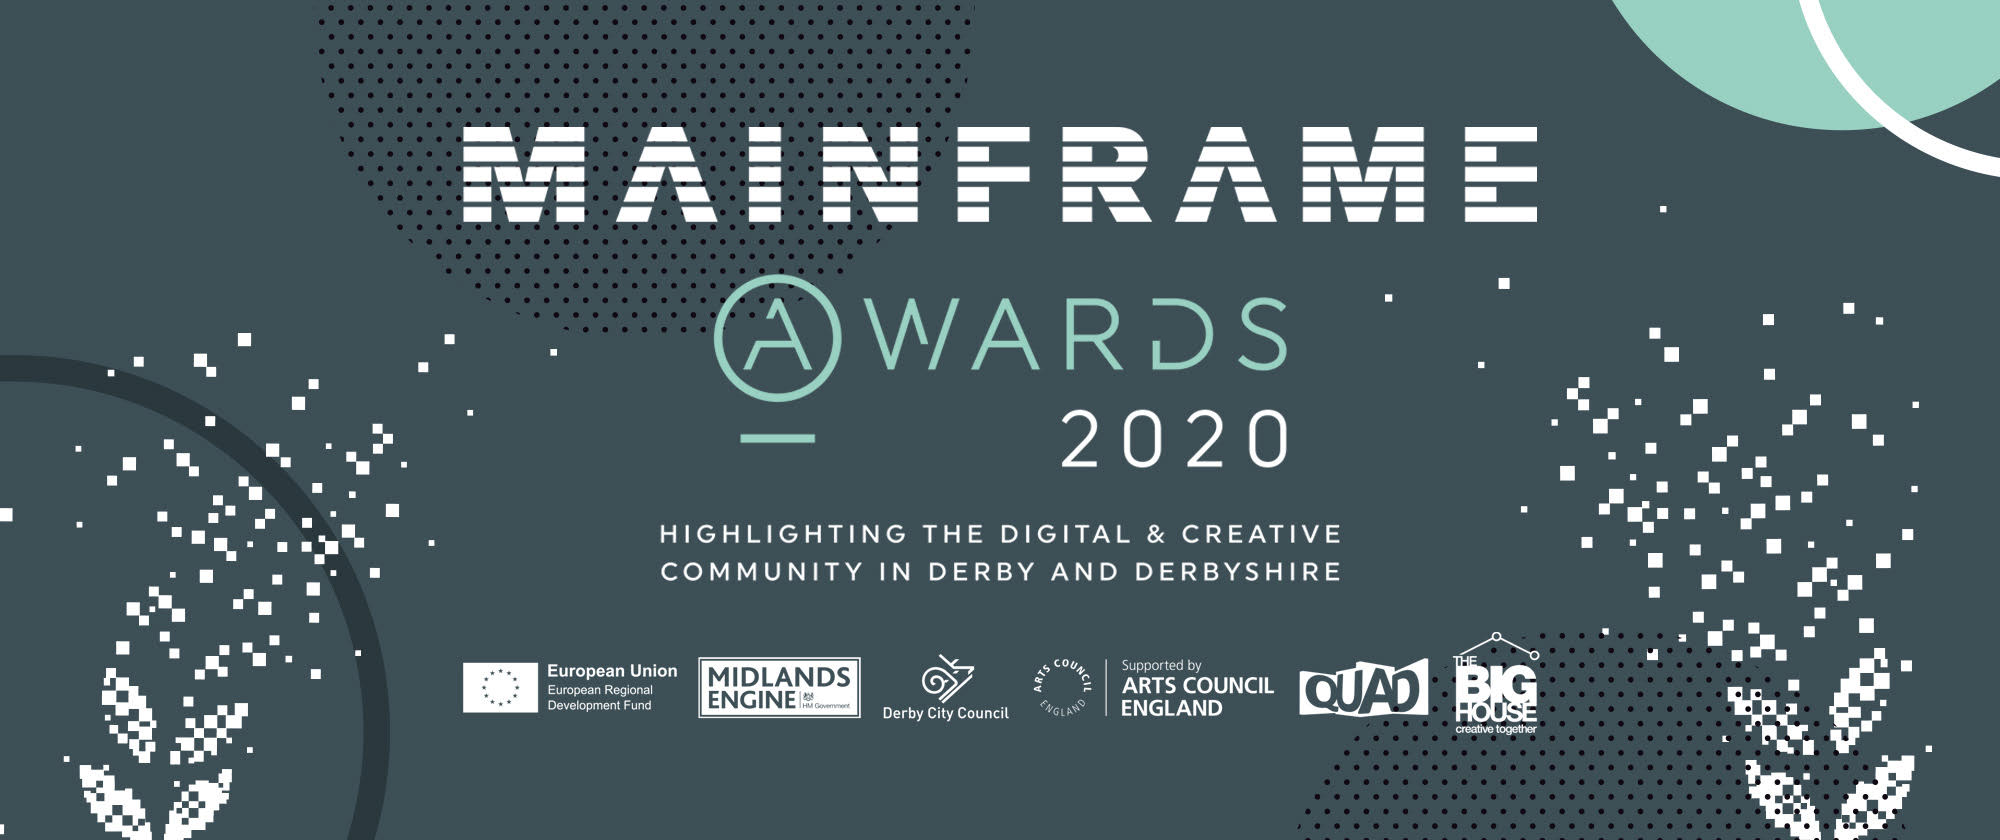 MainframeAwards2020_WebsiteHeader (1)